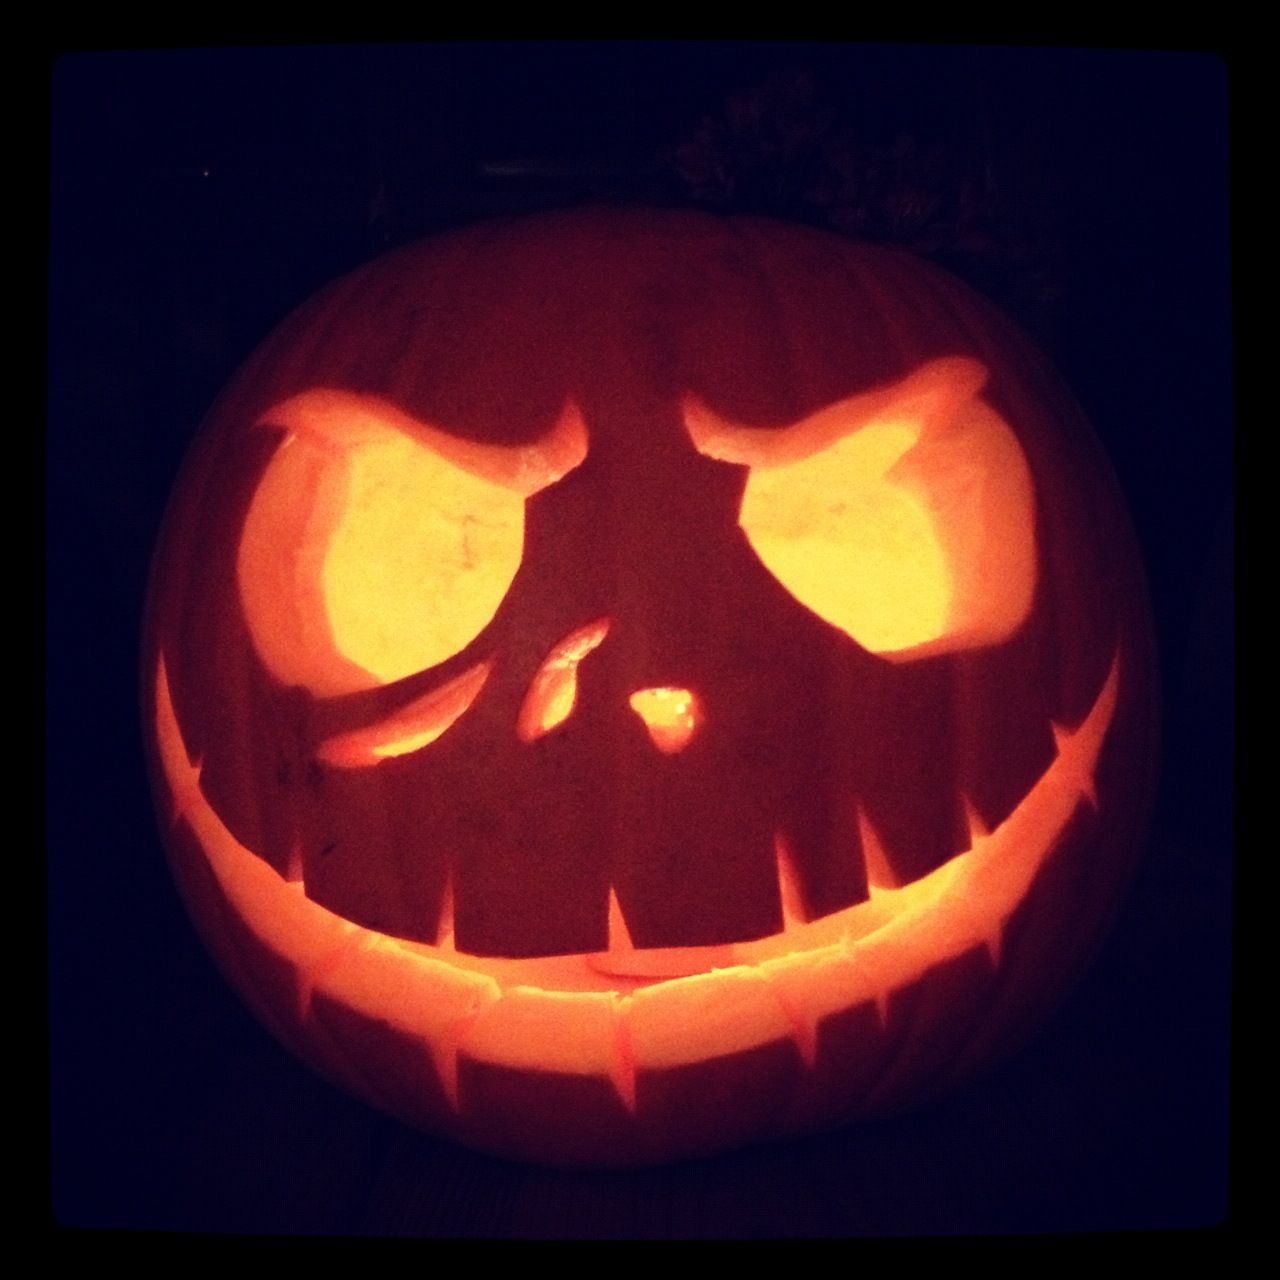 Our Jack Skellington pumpkin (from \'The Nightmare Before Christmas ...